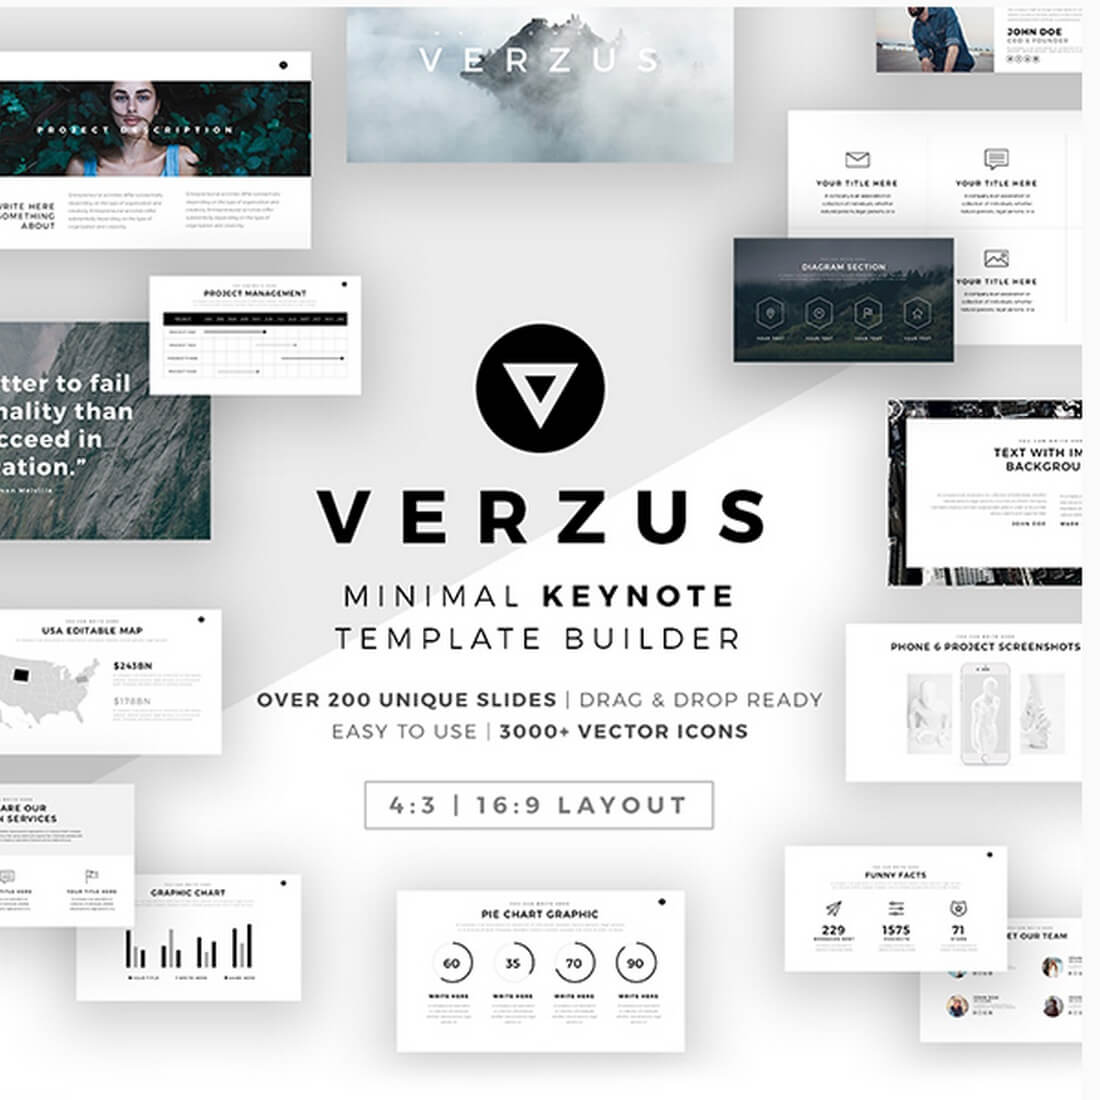 verzus 30+ Best Keynote Templates of 2018 design tips